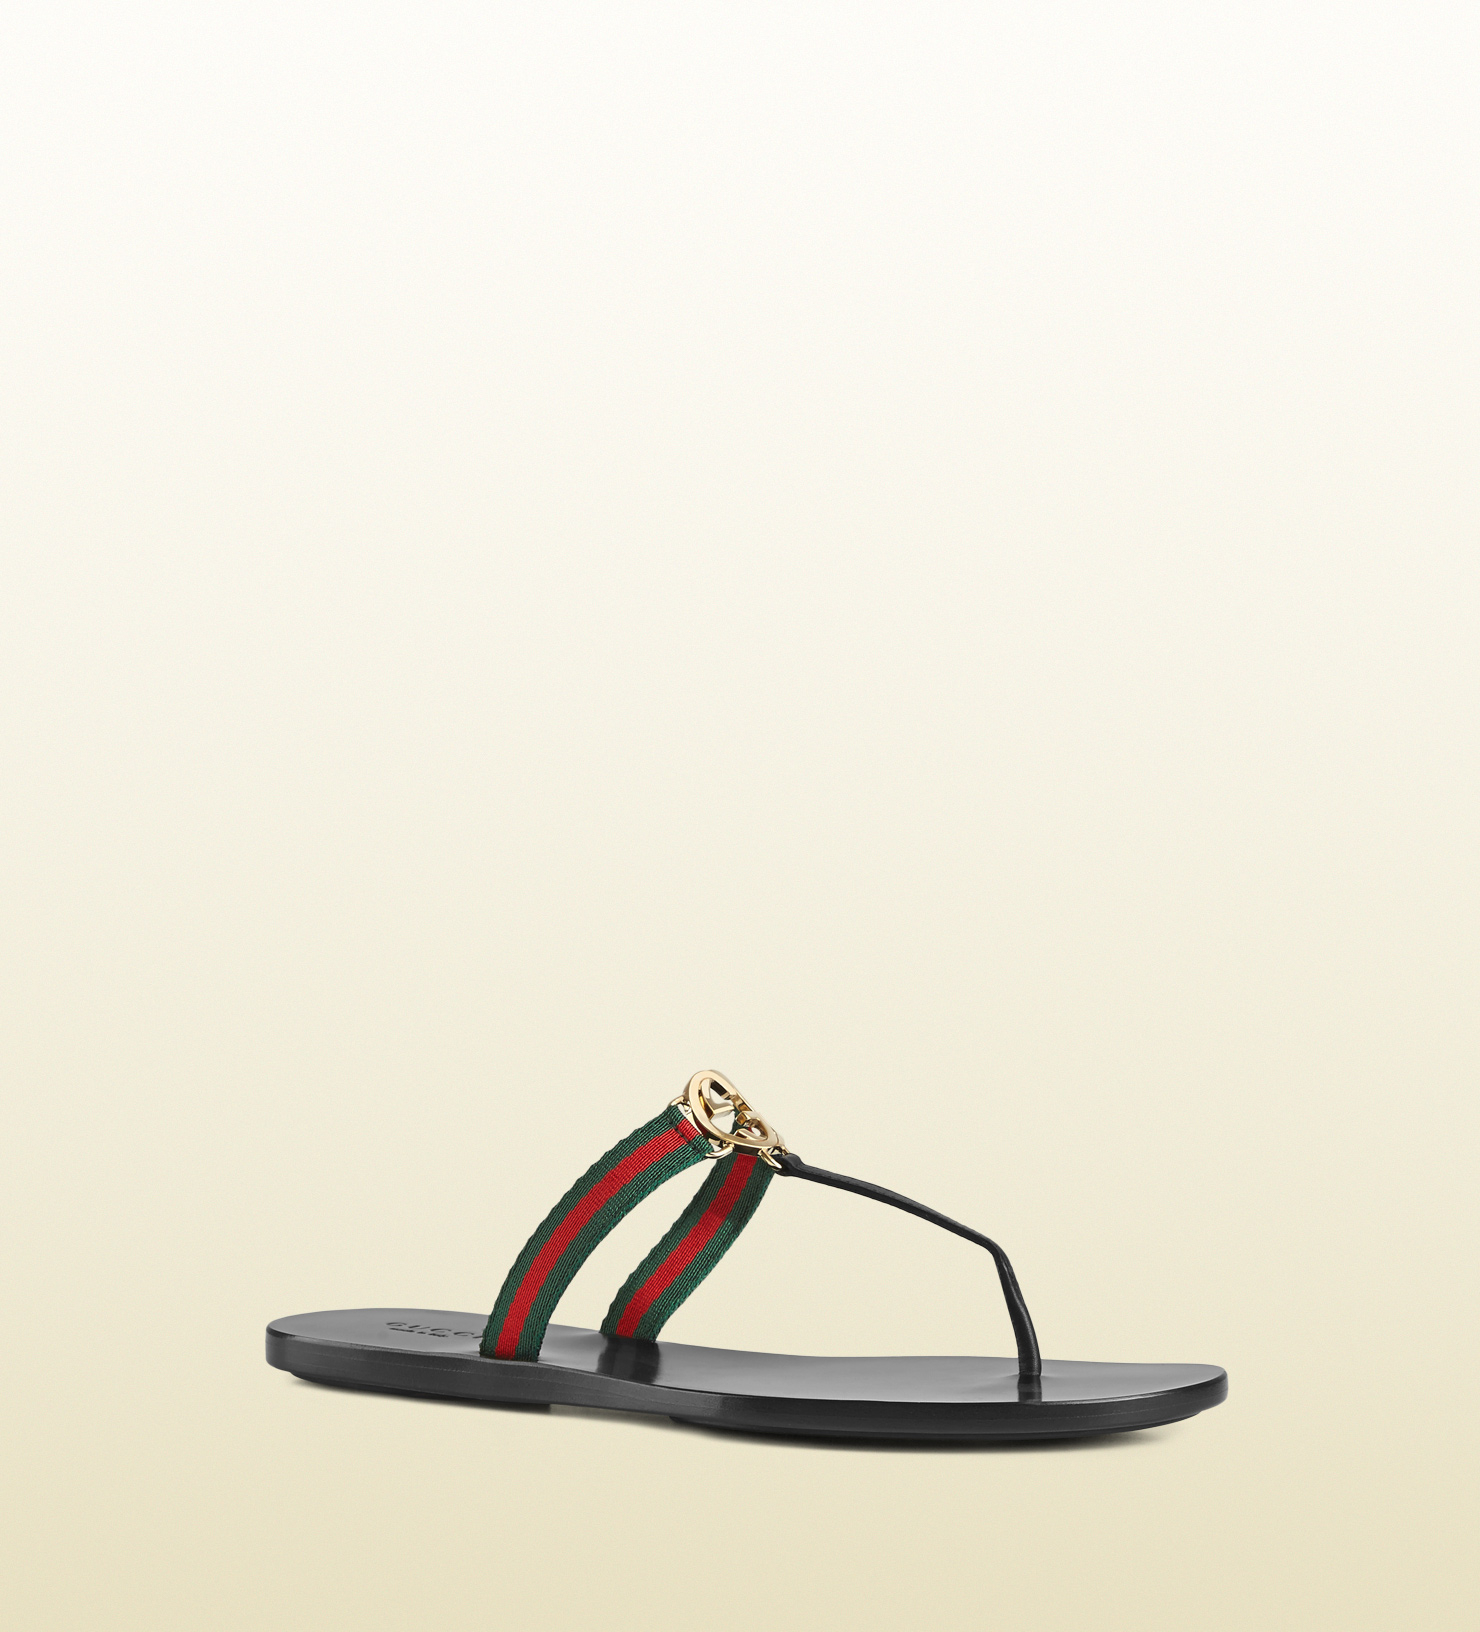 862f9a2215d640 Lyst - Gucci Gg Thong Nylon Web Sandal in Black for Men